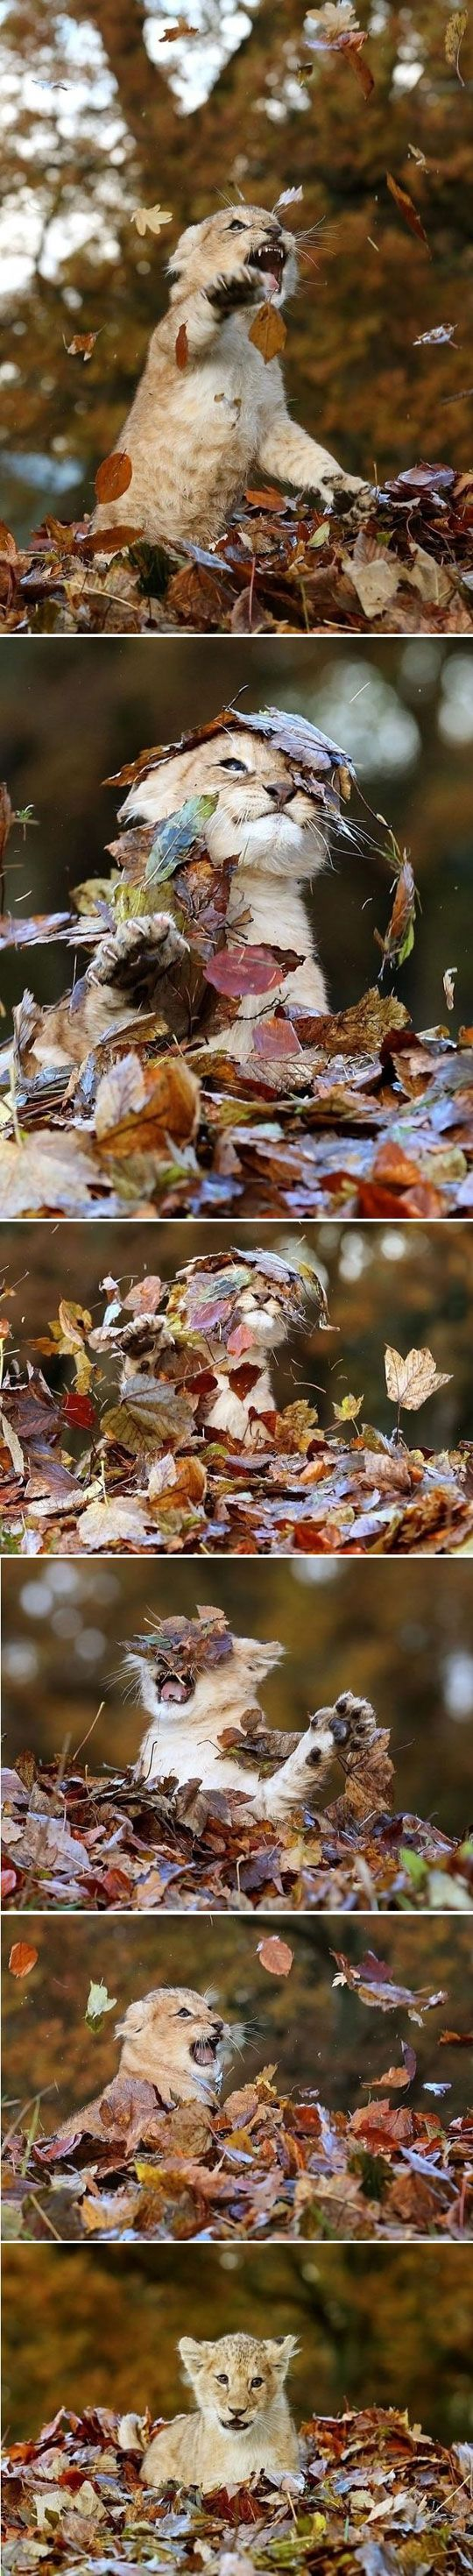 Photographer captures baby lion playing with leaves.